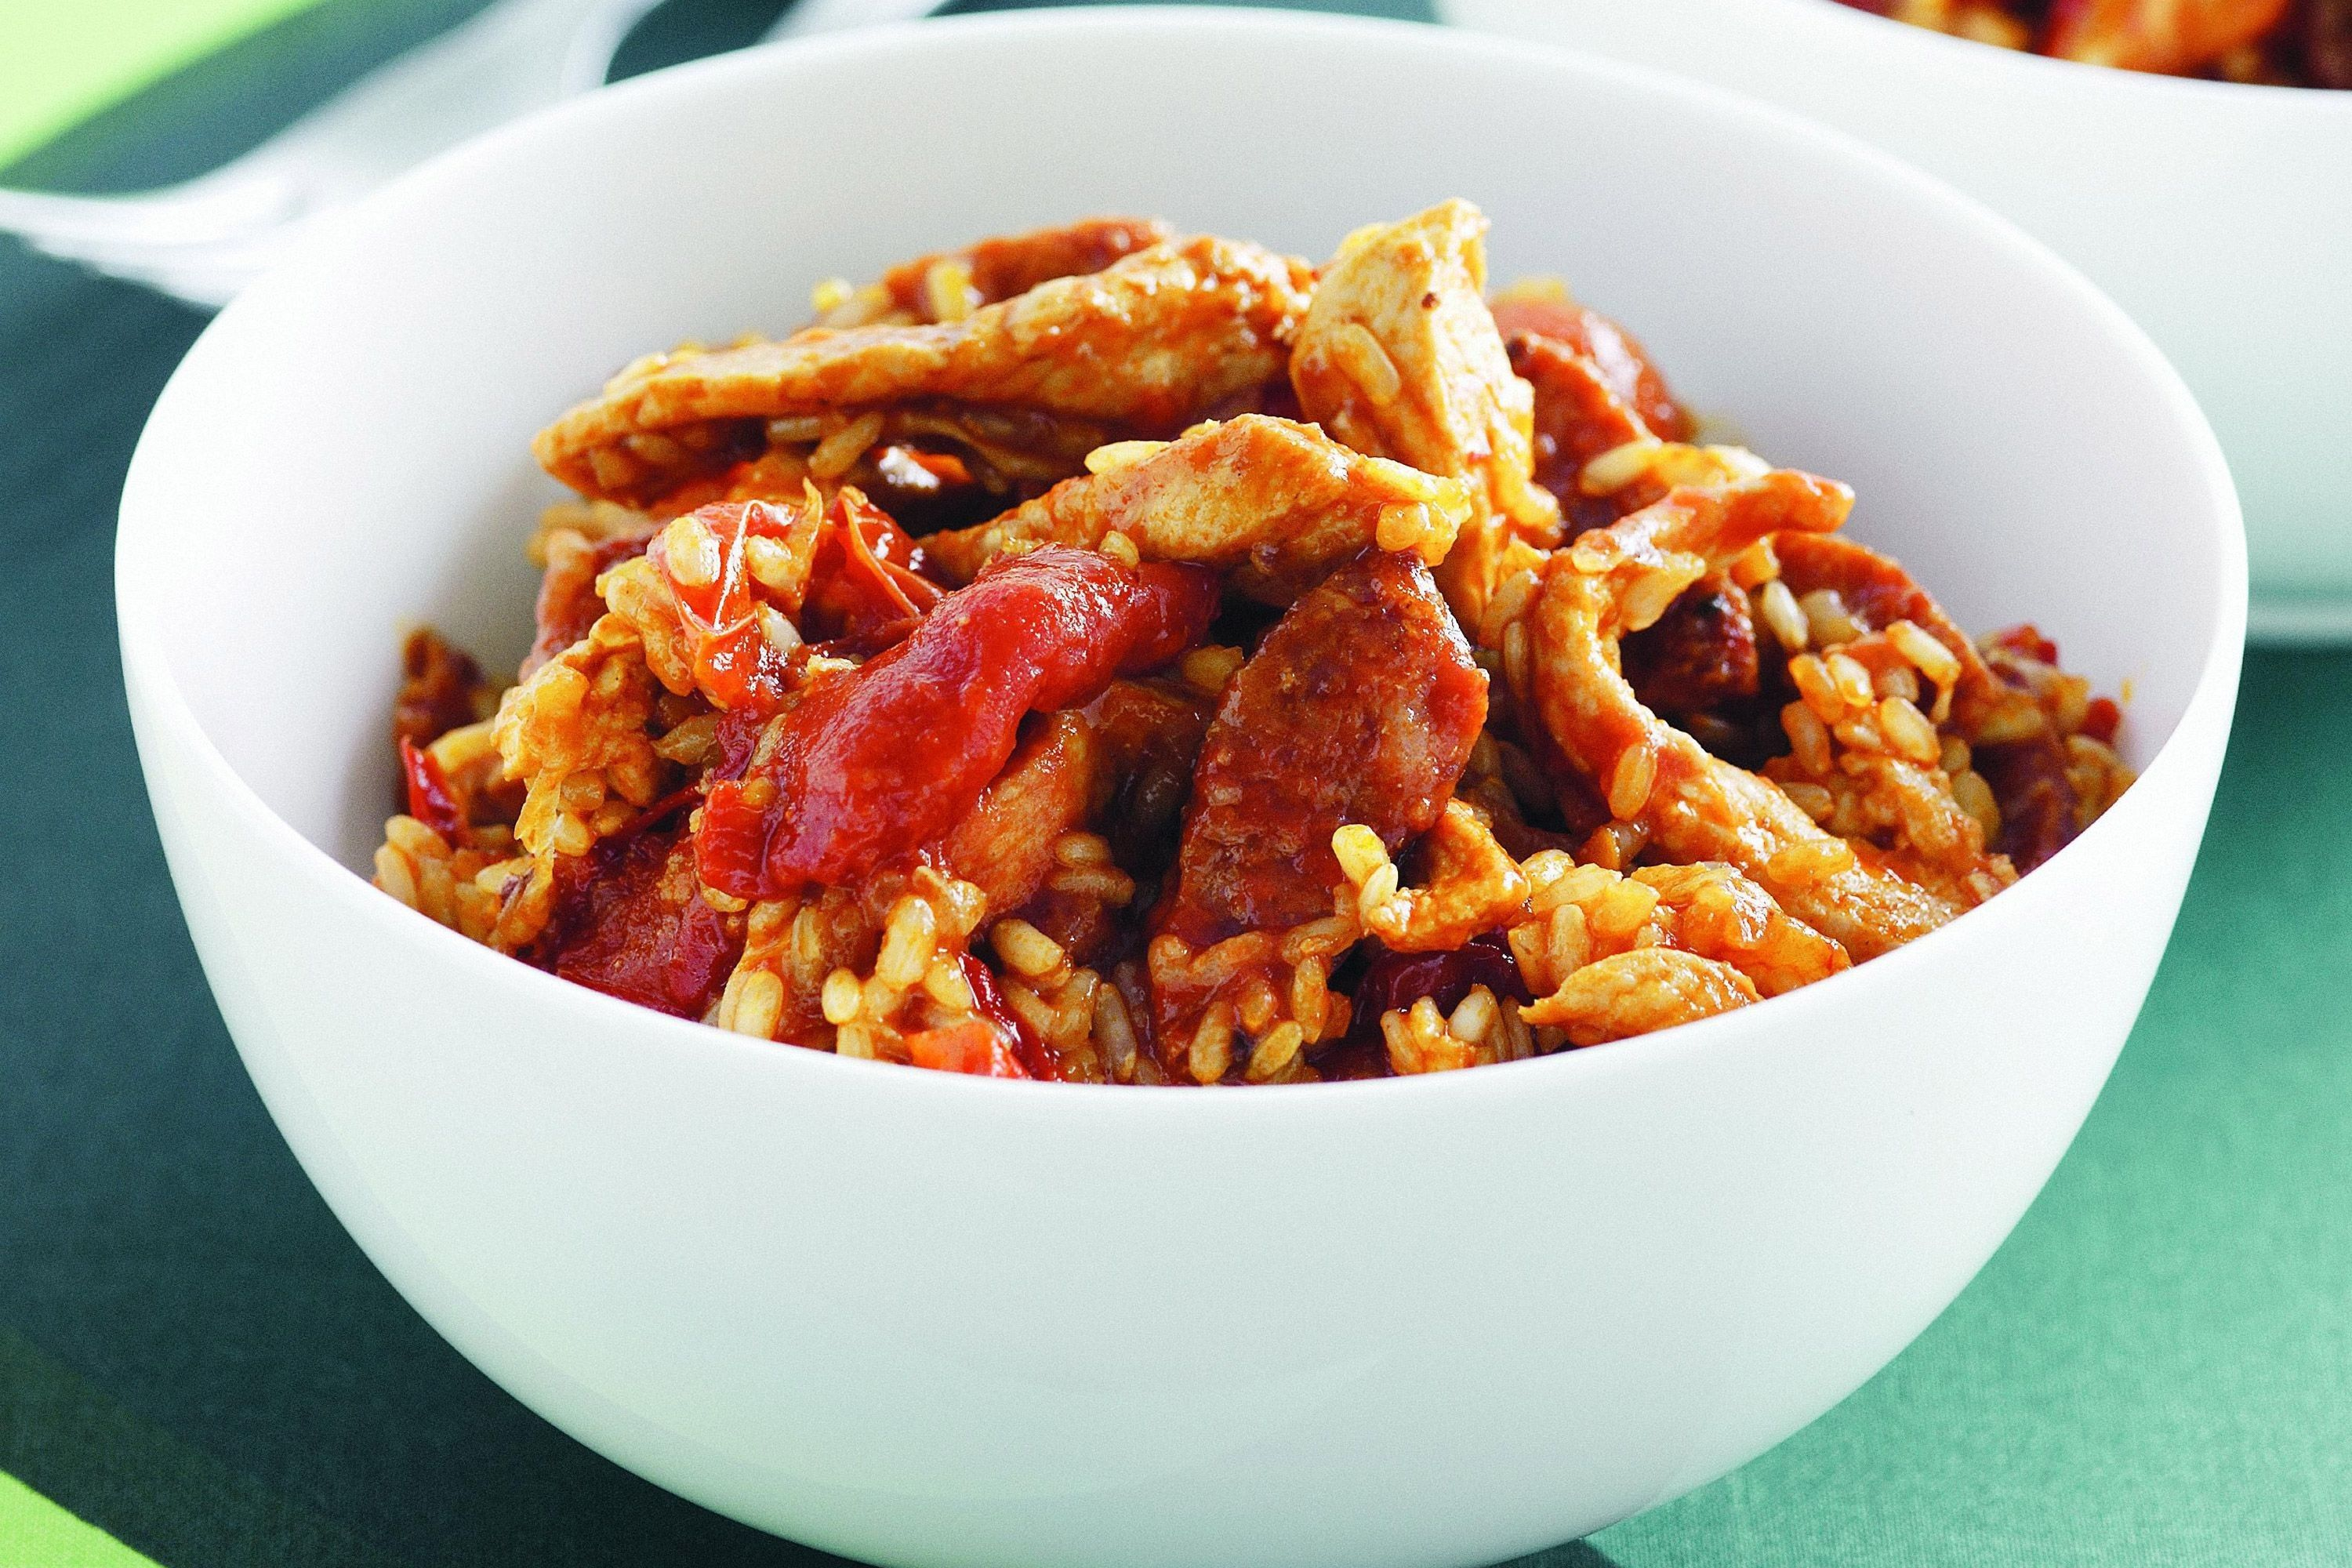 Spanish Style Rice With Chicken And Chorizo Recipe Chicken Chorizo Risotto Chicken Risotto Risotto Recipes